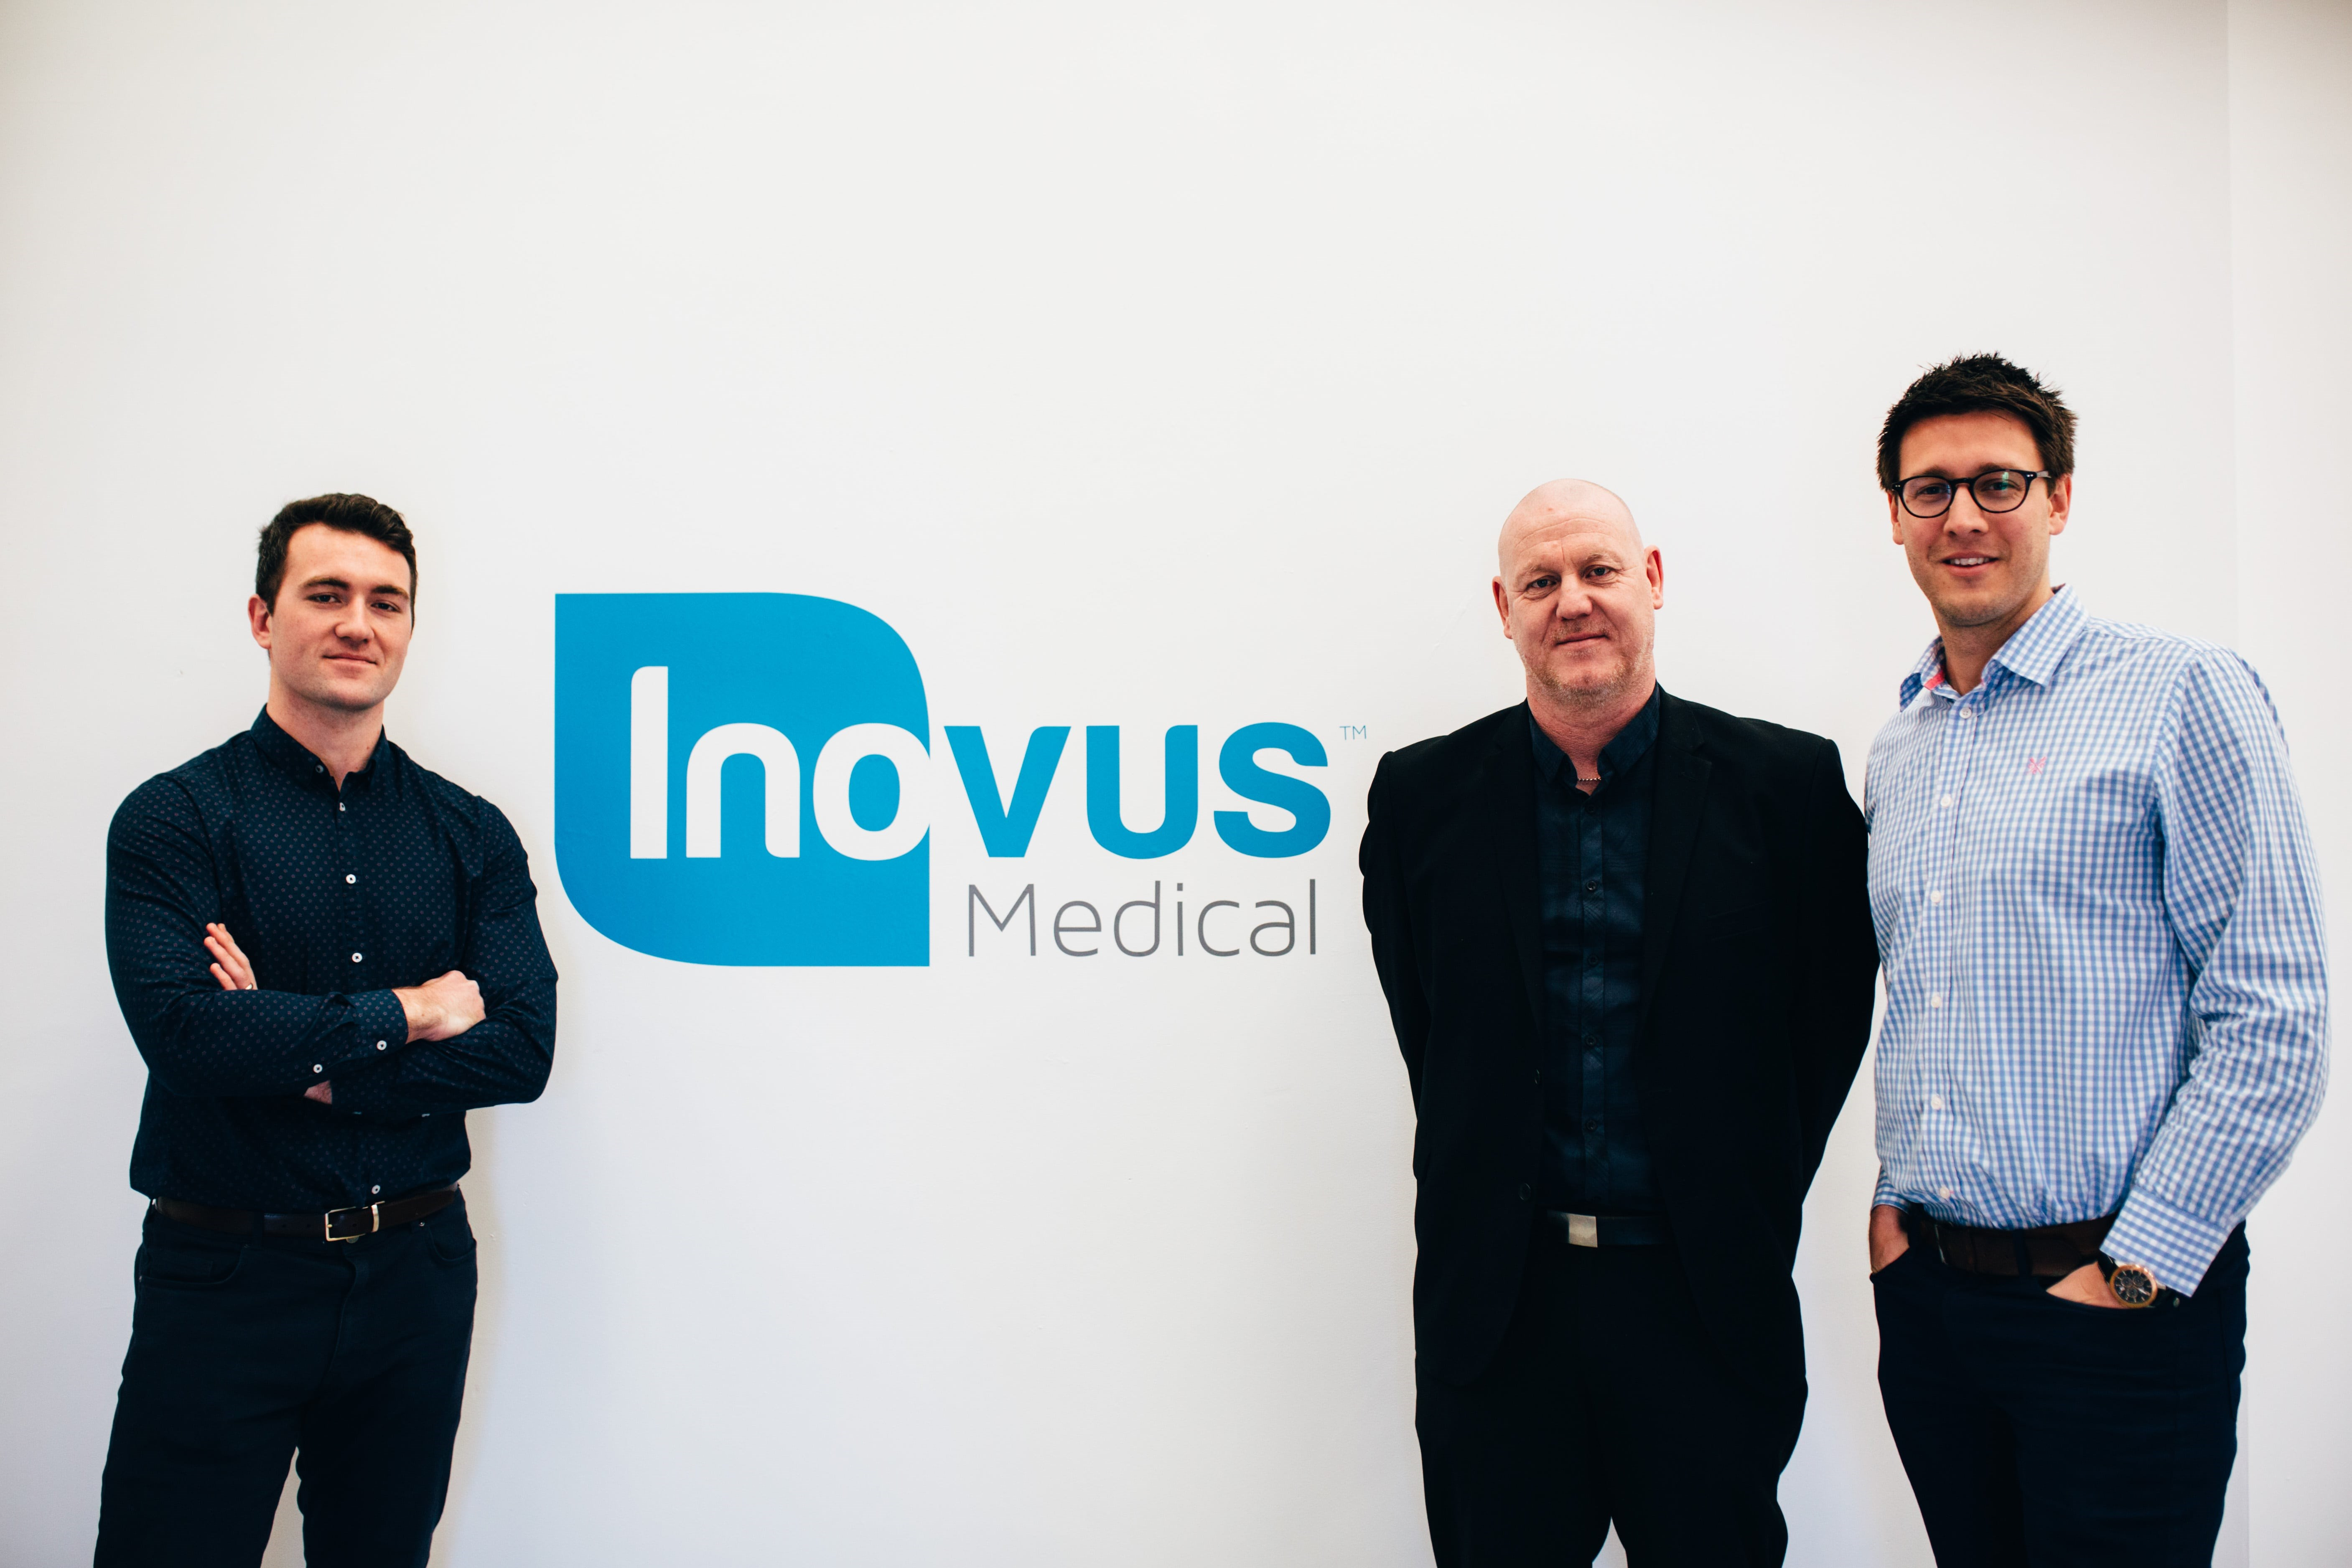 Laser cutter investment leads to £150k sales boost for Inovus Medical